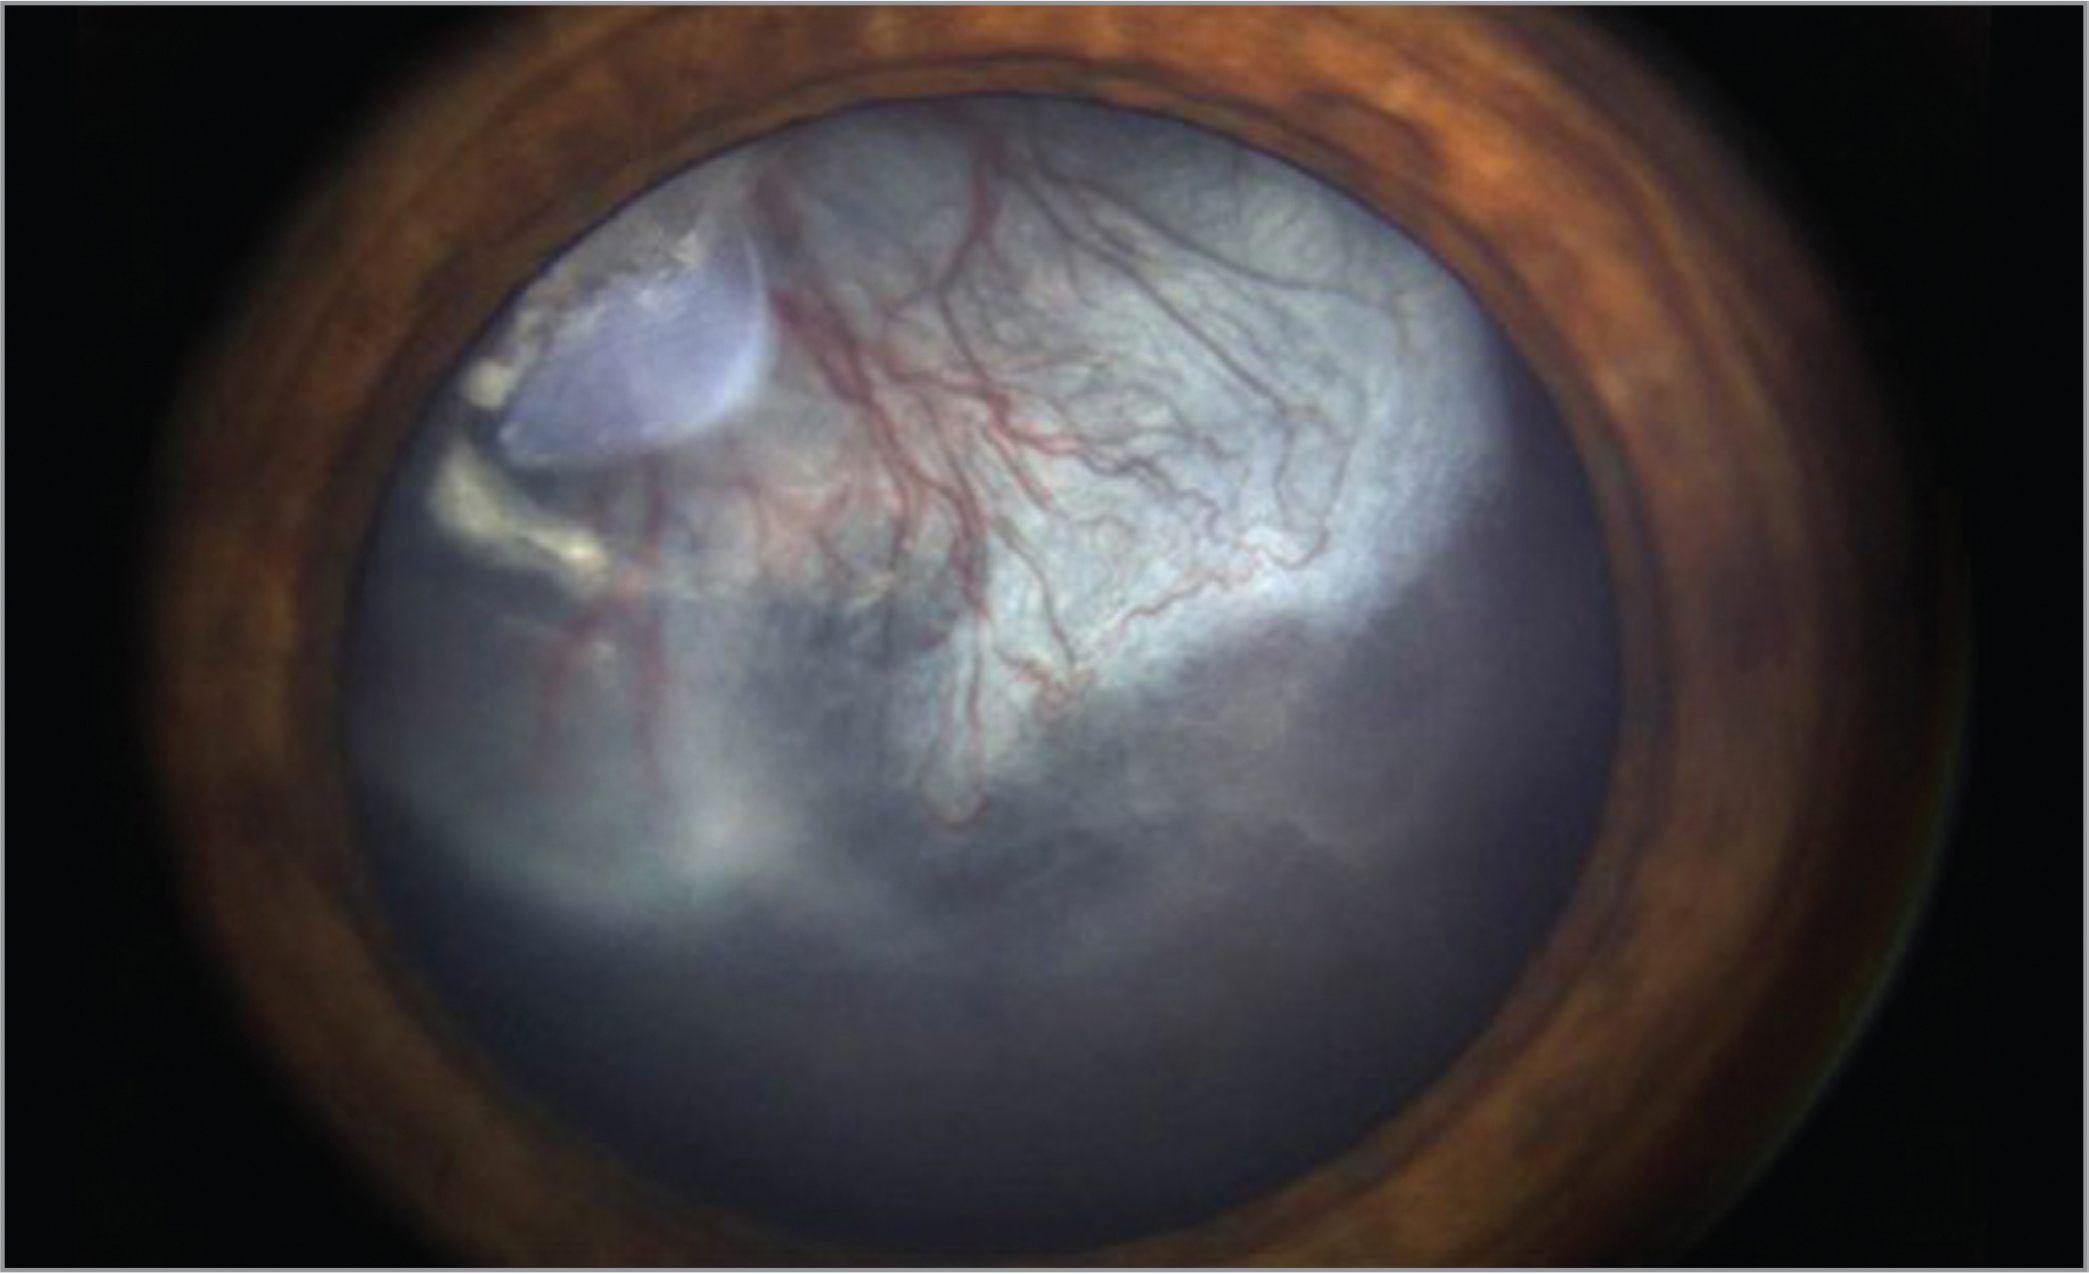 Retcam photograph of the anterior segment in the right eye demonstrated superotemporal opacity on the anterior lens capsule, clear crystalline lens, and a retrolenticular fibrovascular membrane with cysts extending from the temporal aspect of the lens and occluding the visual axis.